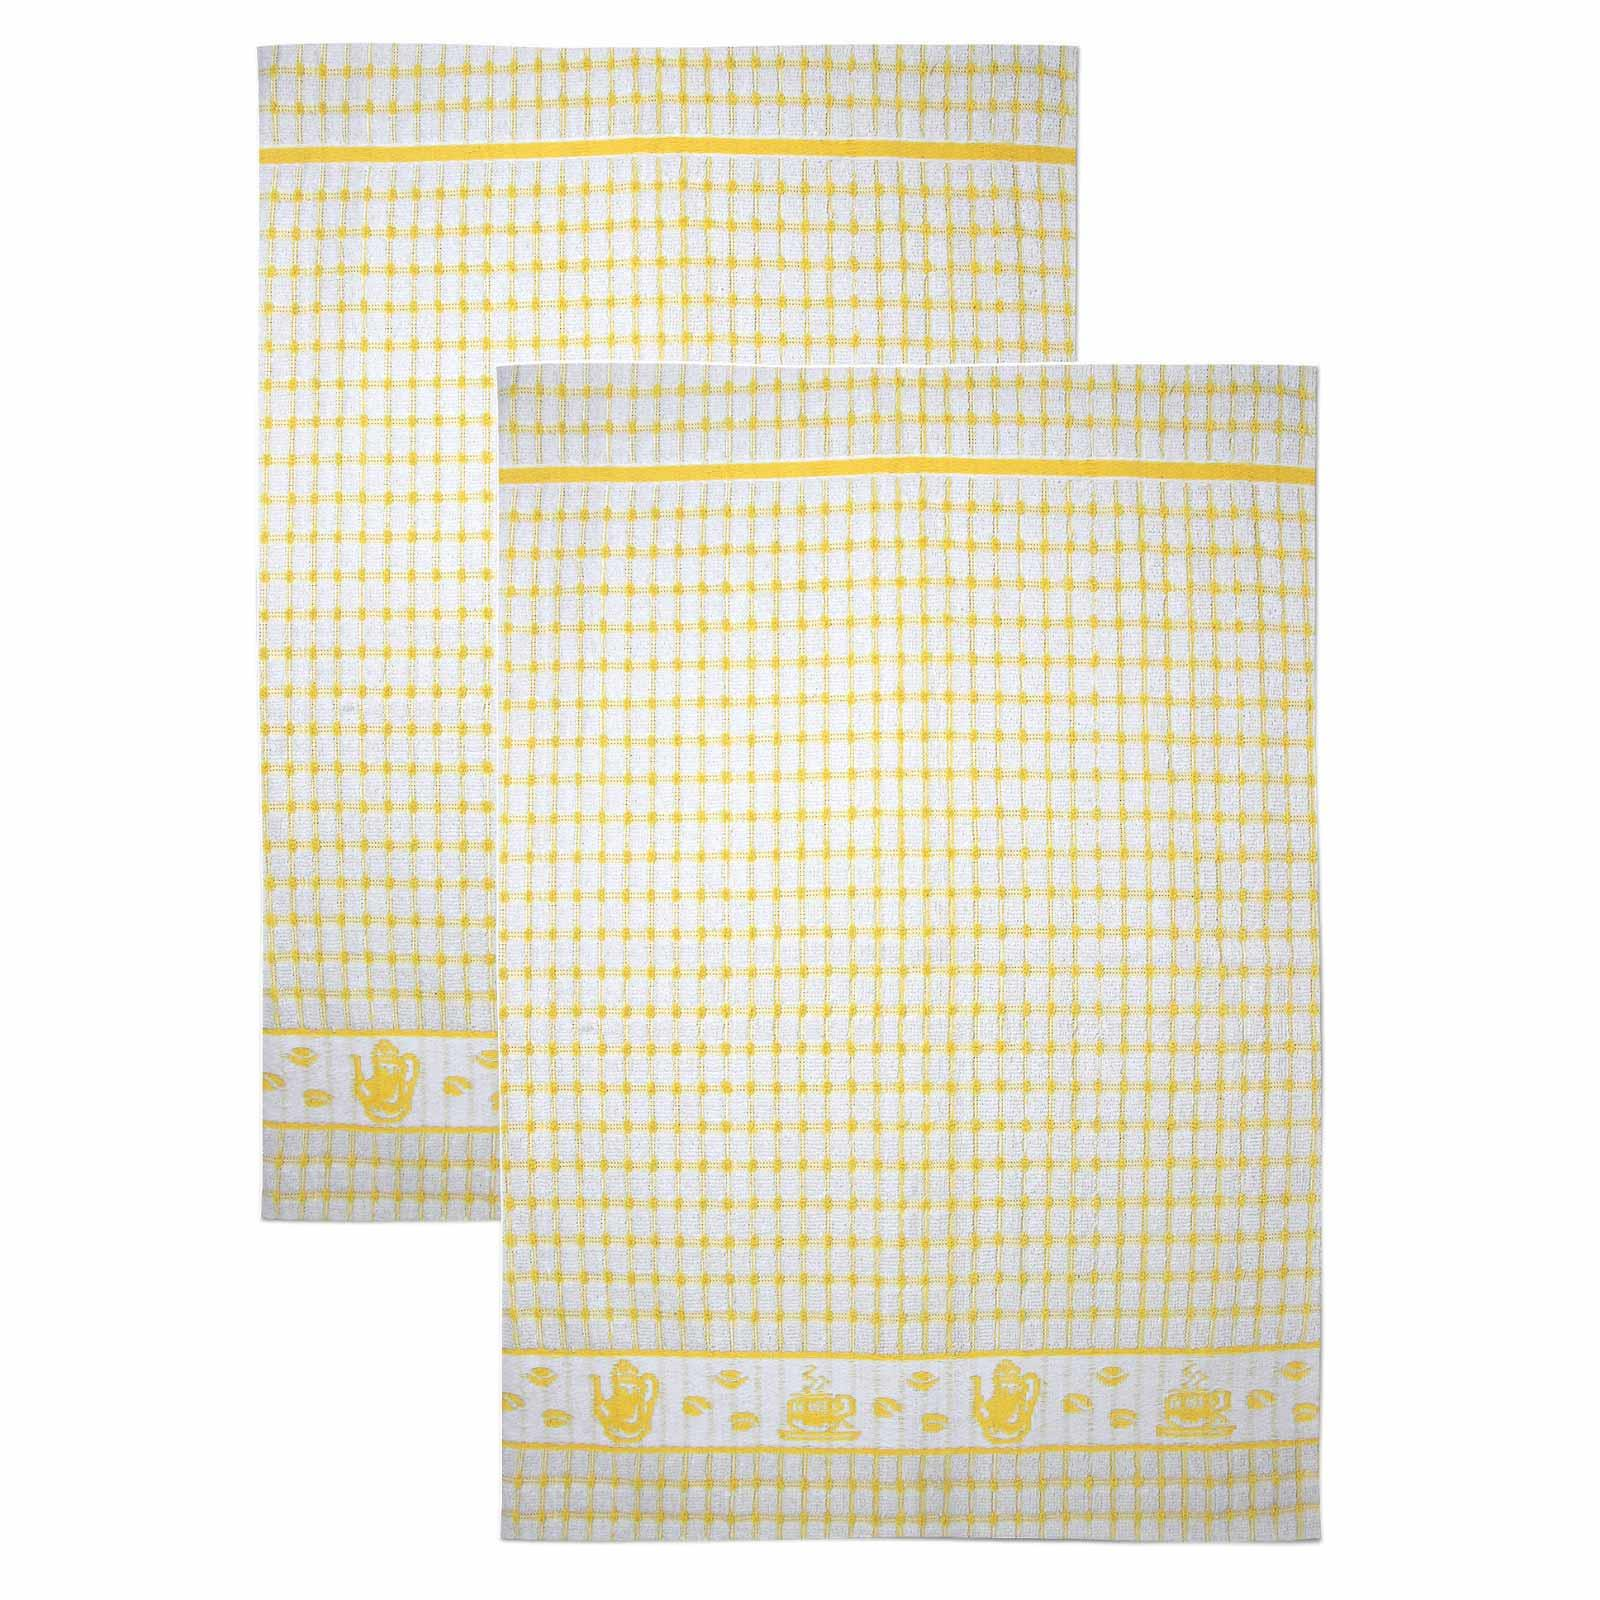 Packs-of-2-4-6-12-Tea-Towels-100-Cotton-Terry-Kitchen-Dish-Drying-Towel-Sets thumbnail 16